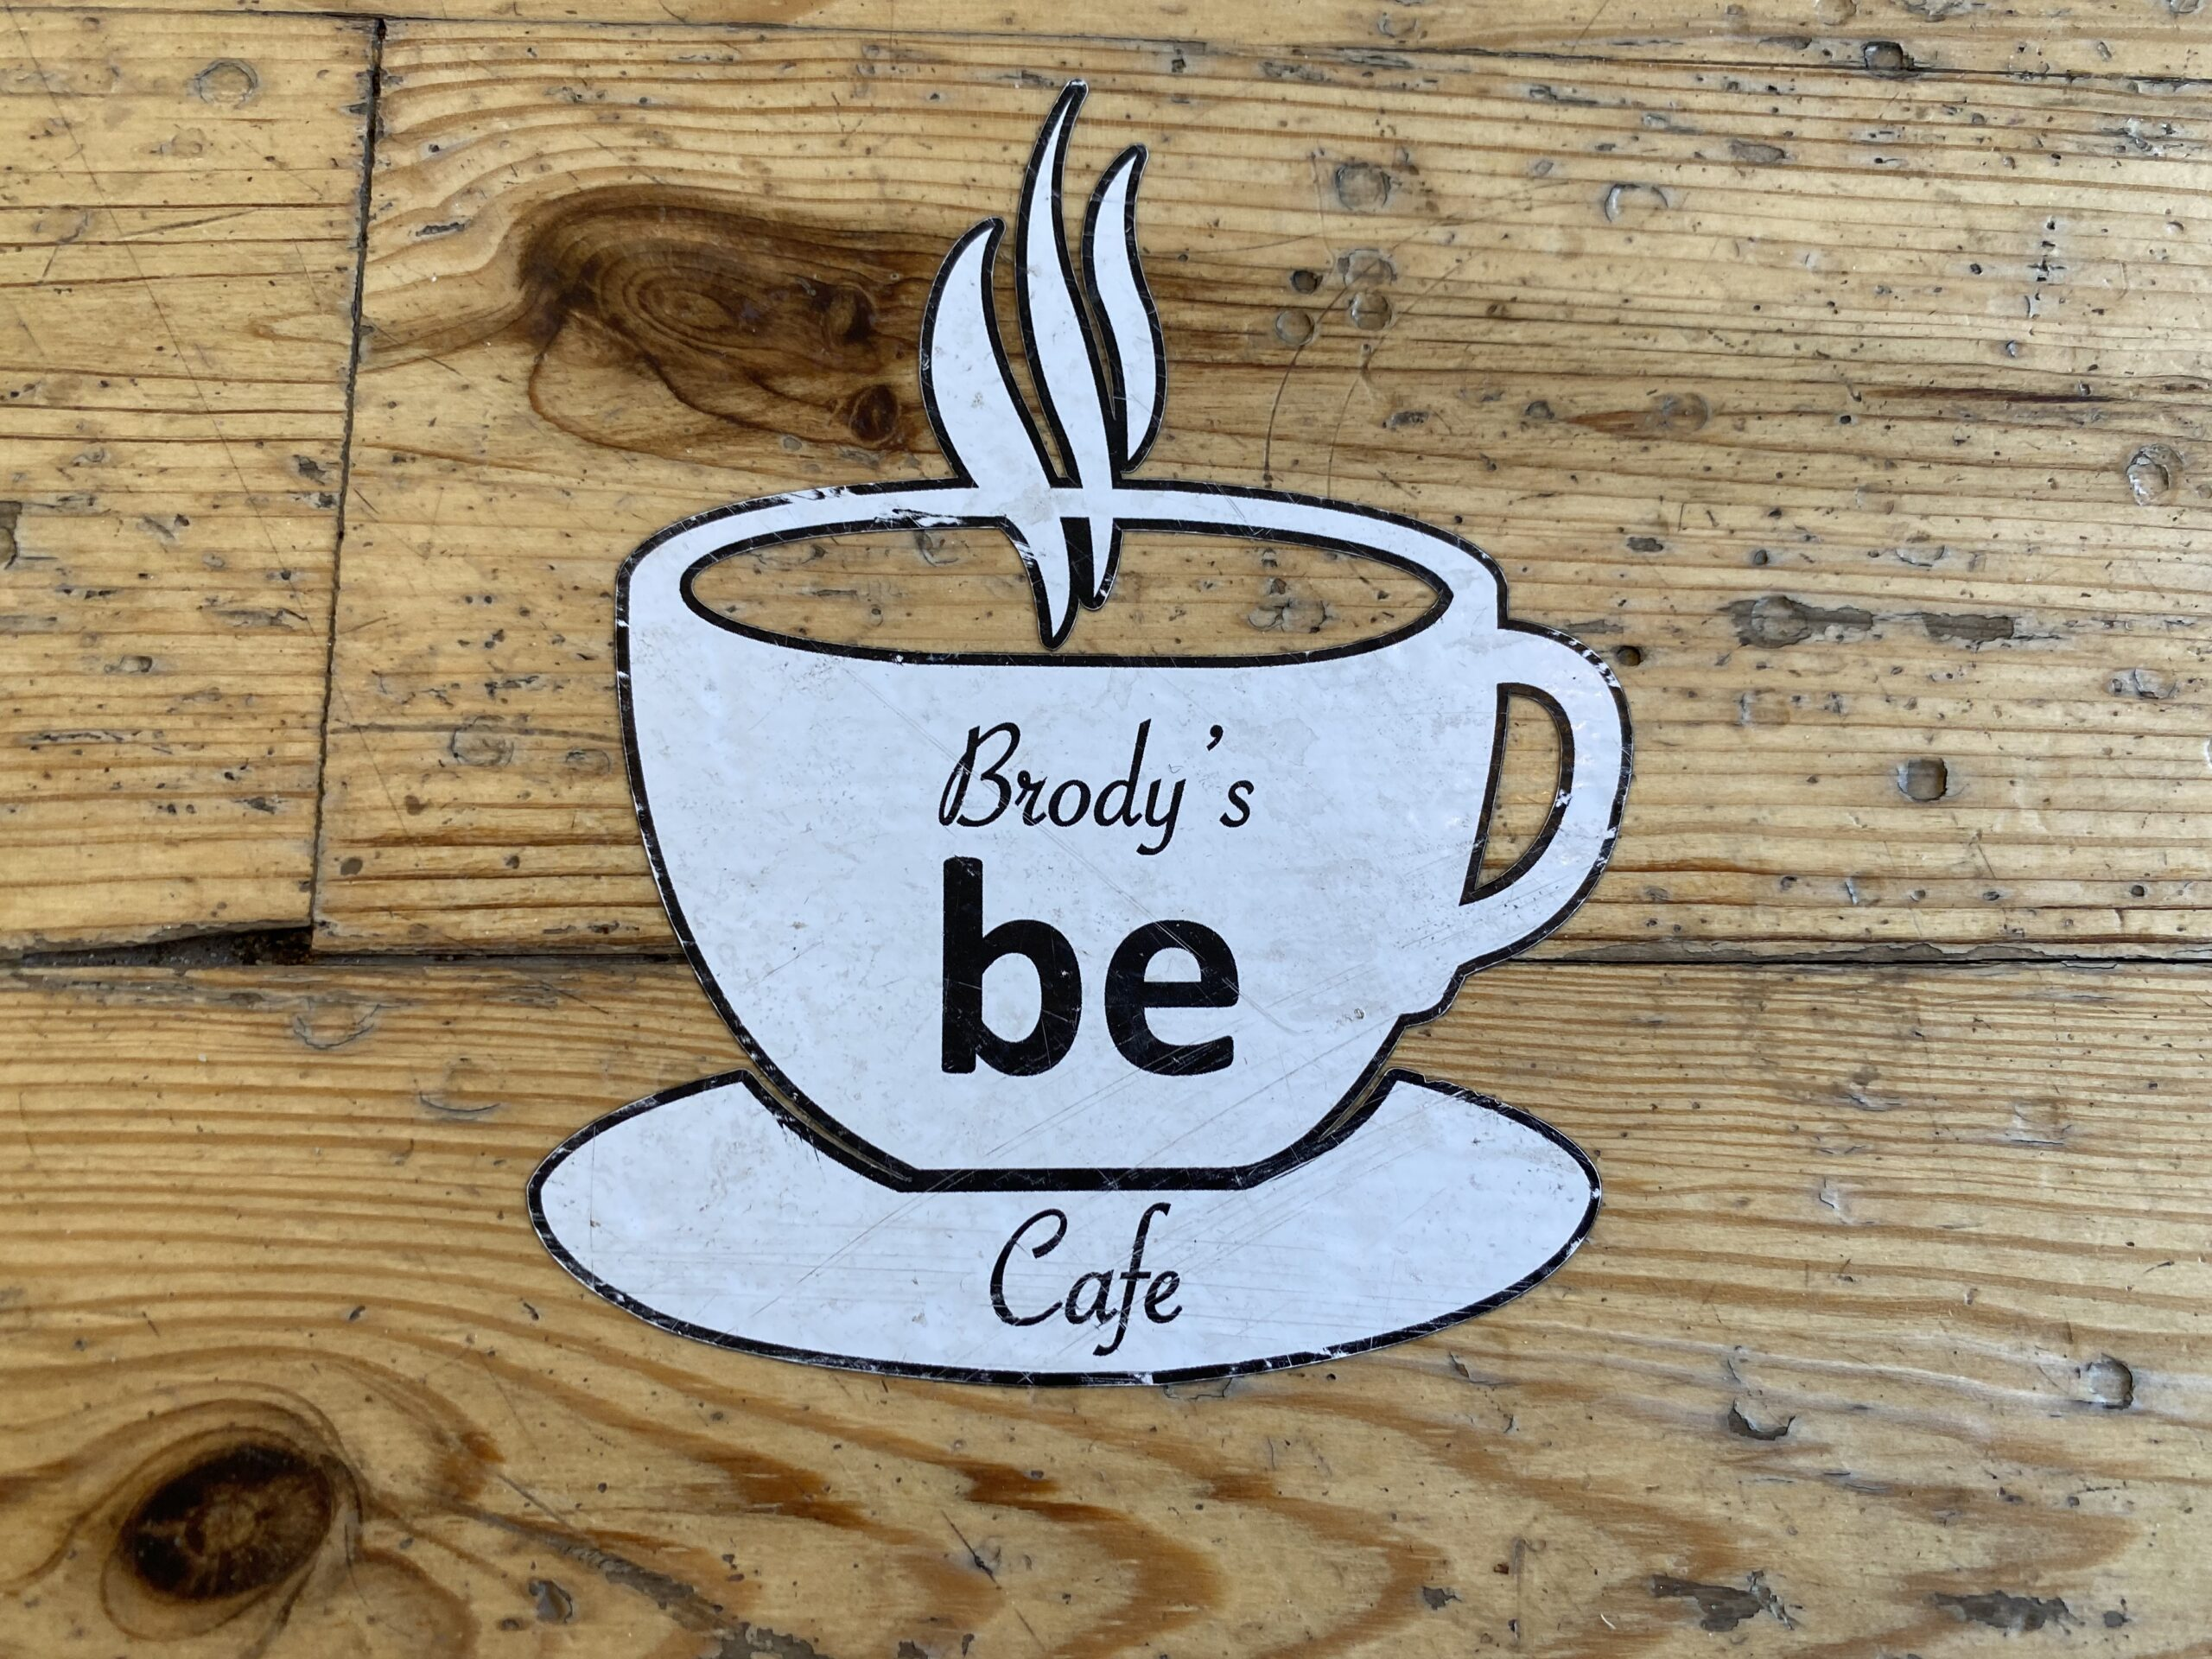 Grand Rapids Triathlon Welcomes Brody's be Cafe as Local Charity Partner in 2021